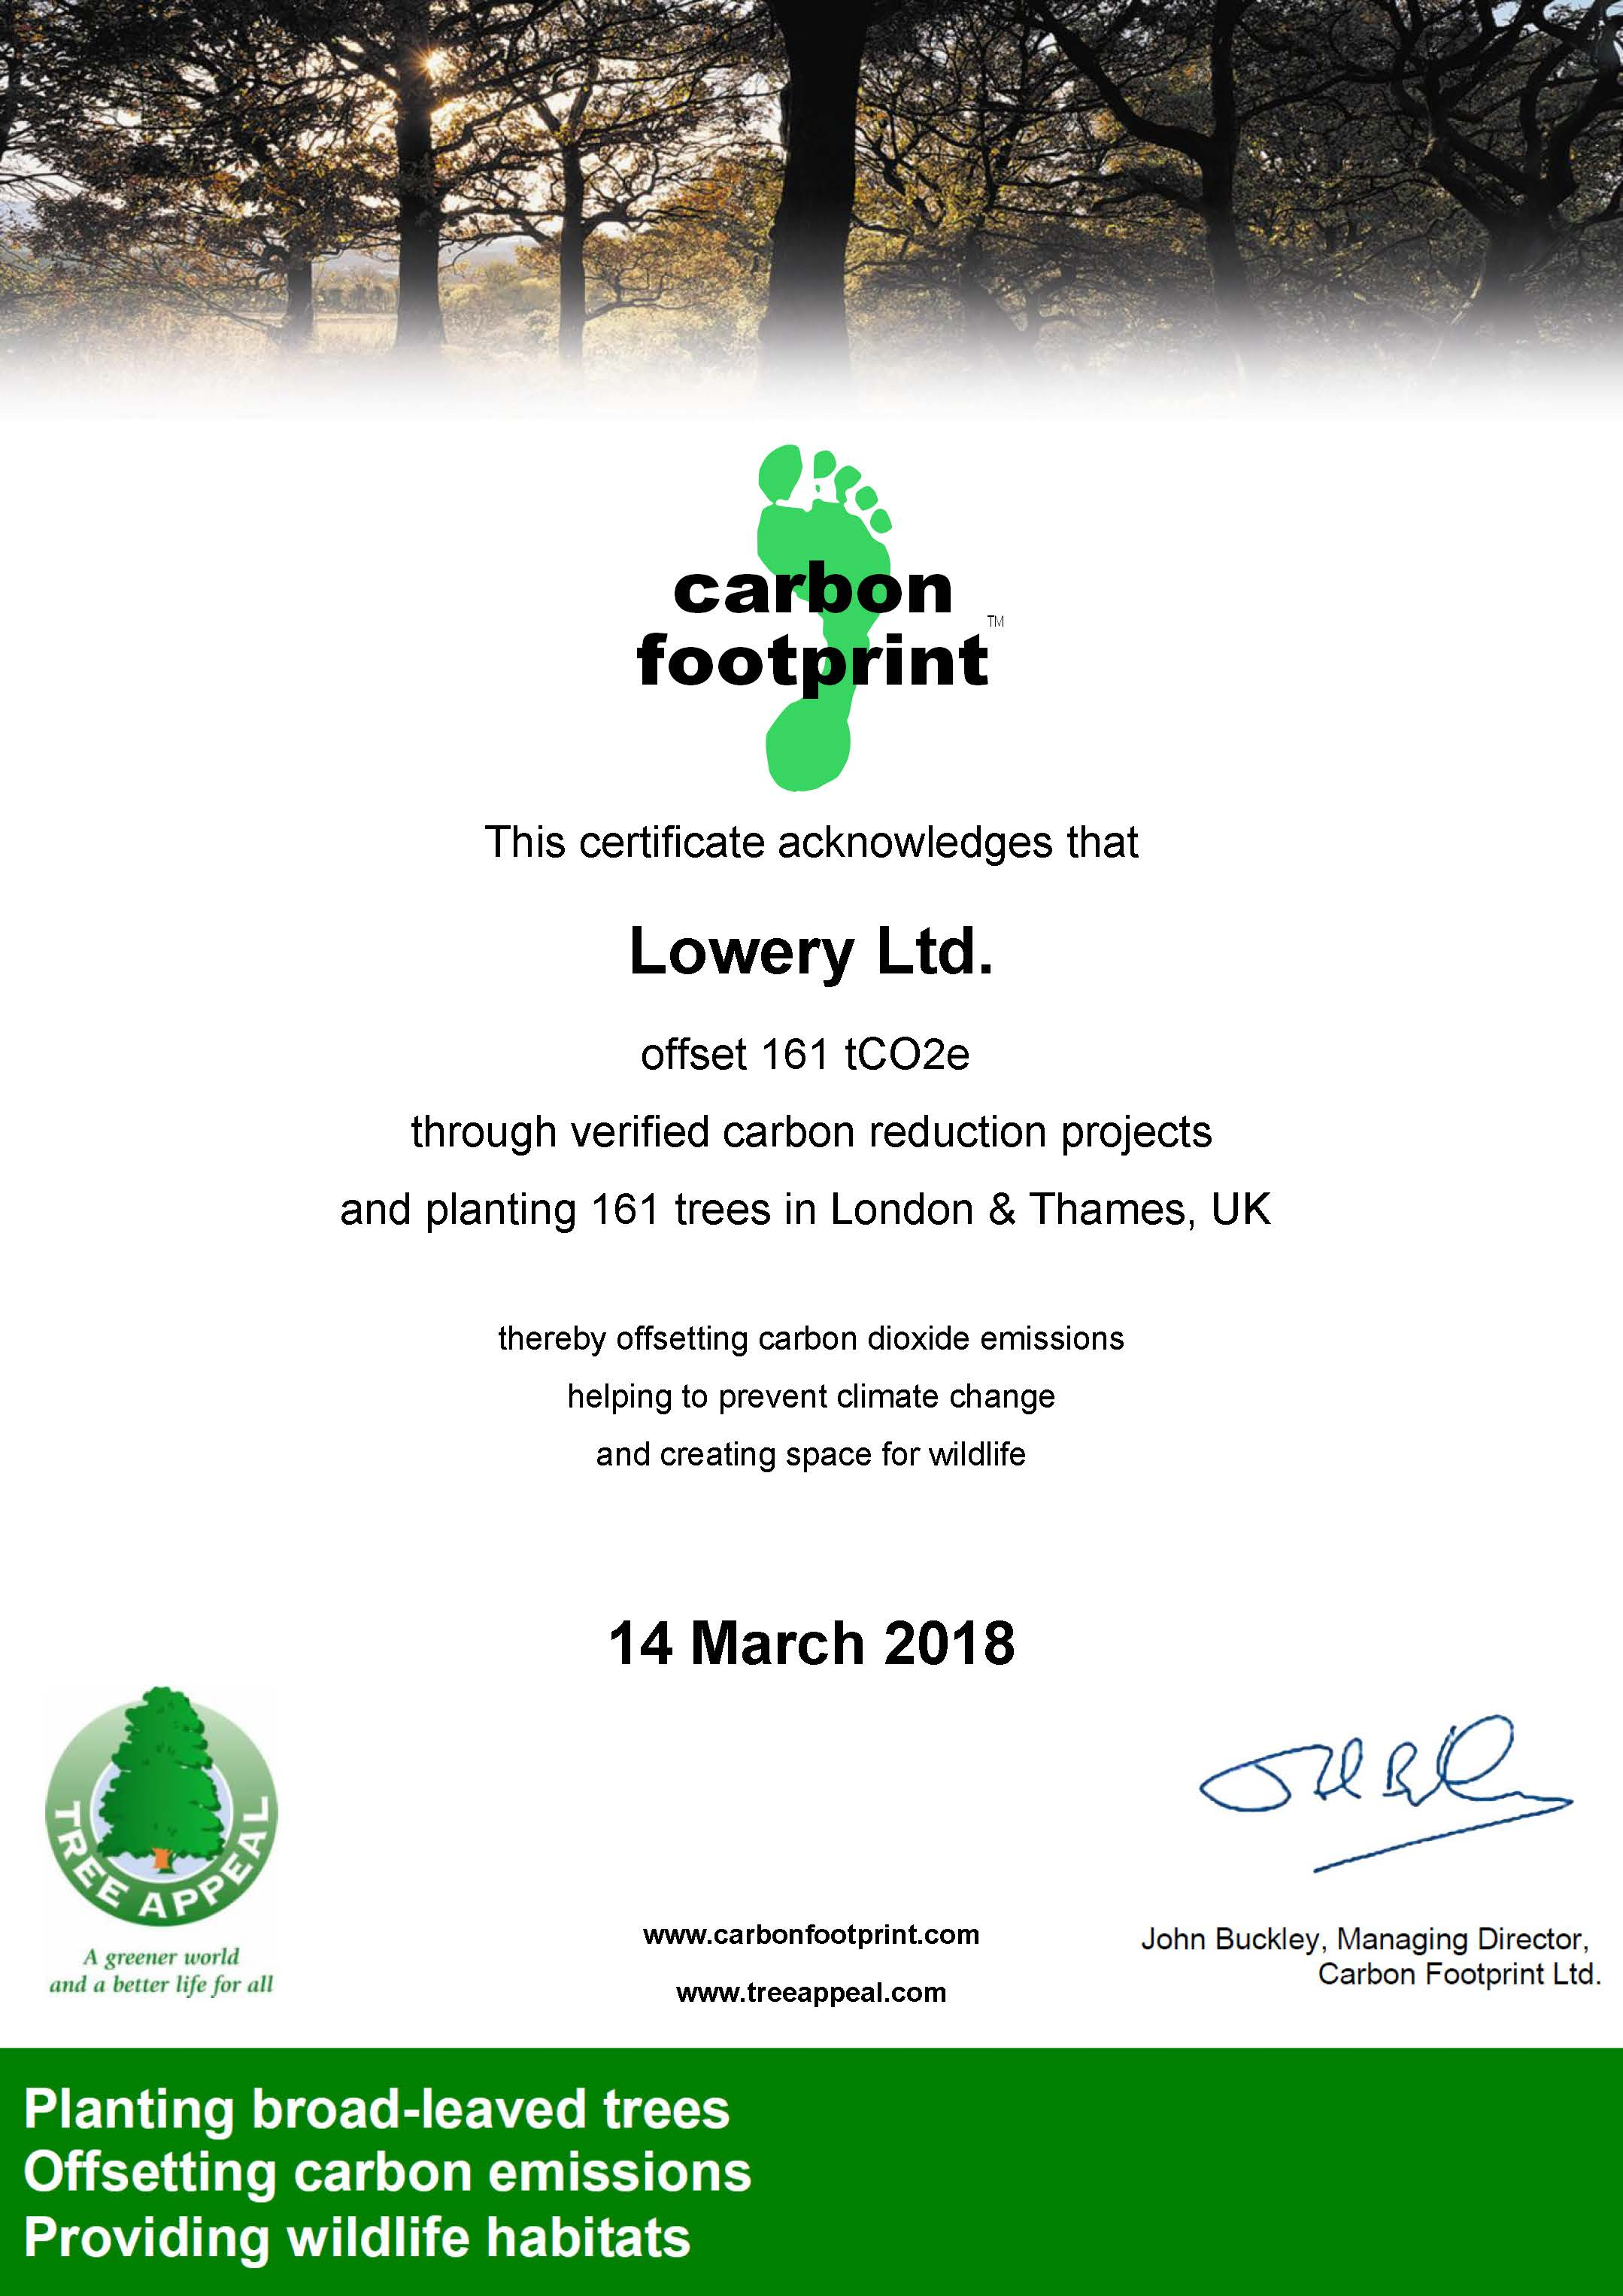 Carbon Footprint offset through Tree Planting in London / Thames Valley